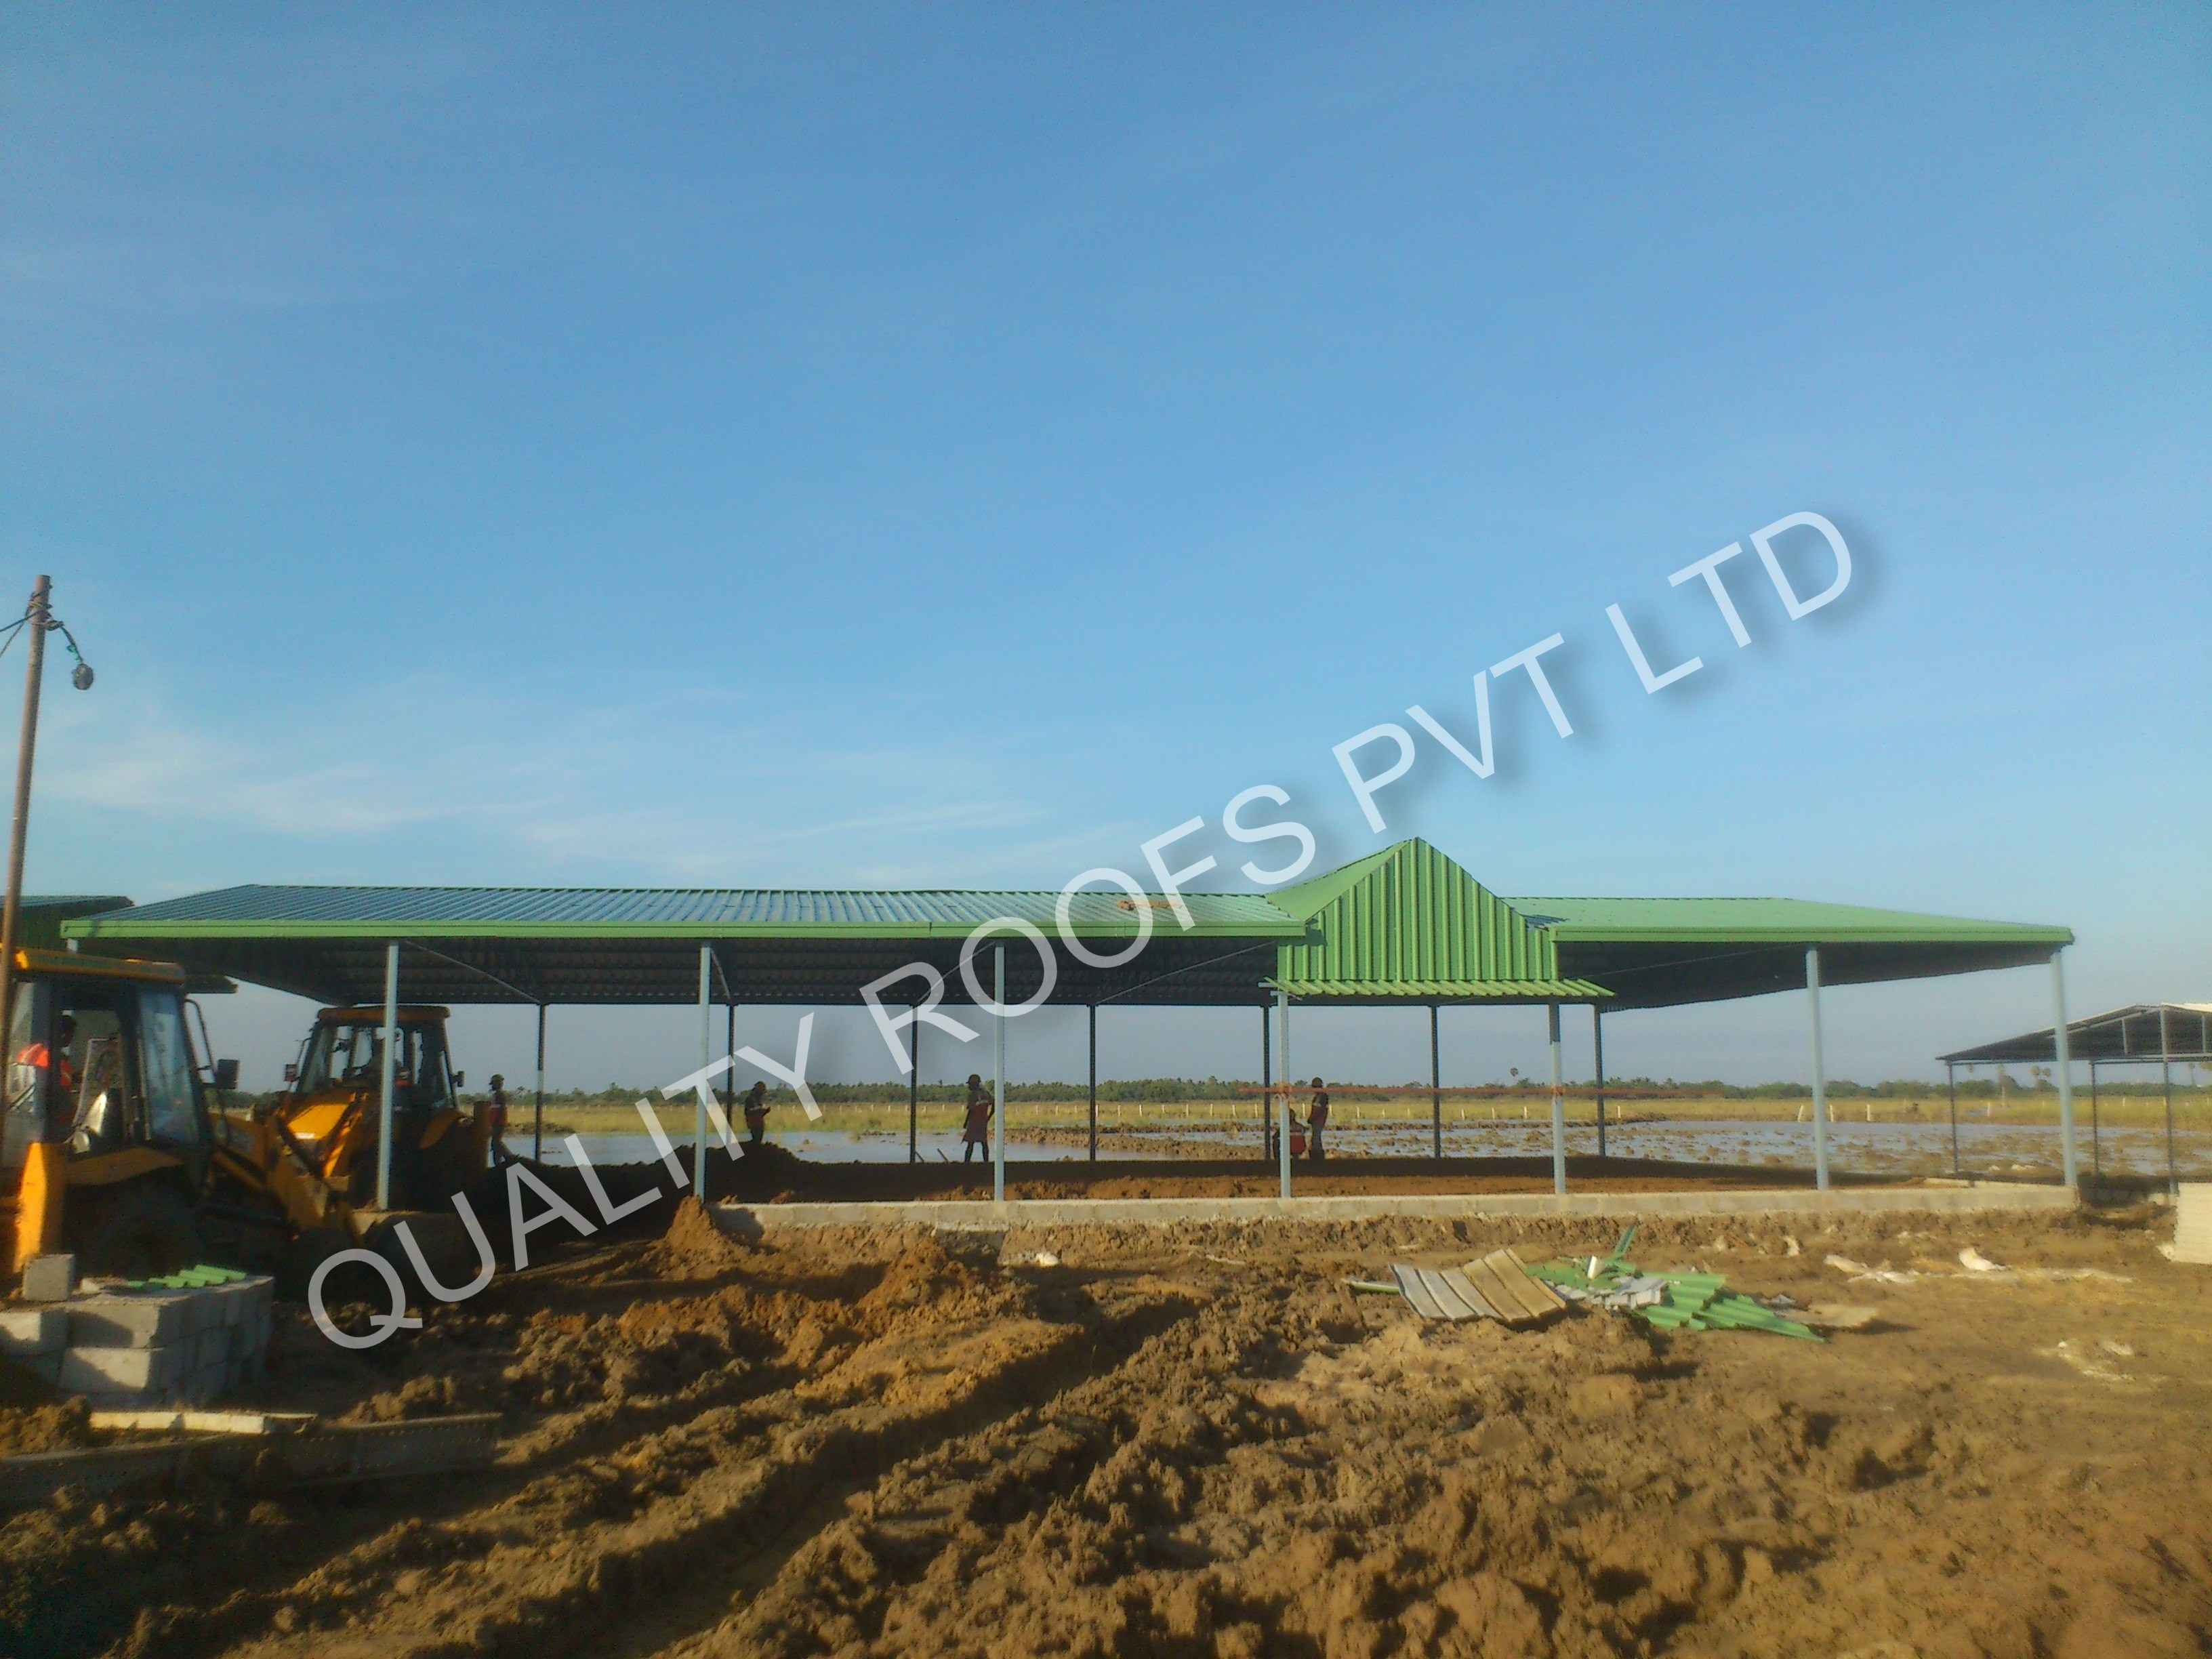 Quality Roofs Pvt Ltd, Poultry Shed Roofing Contractors In Chennai,  Diary farm Shed Roofing, Cow Feed Manufacturing Shed, Roofing Shed Work, Poultry feed manufacturing Sheds, Roofing Contractor Services